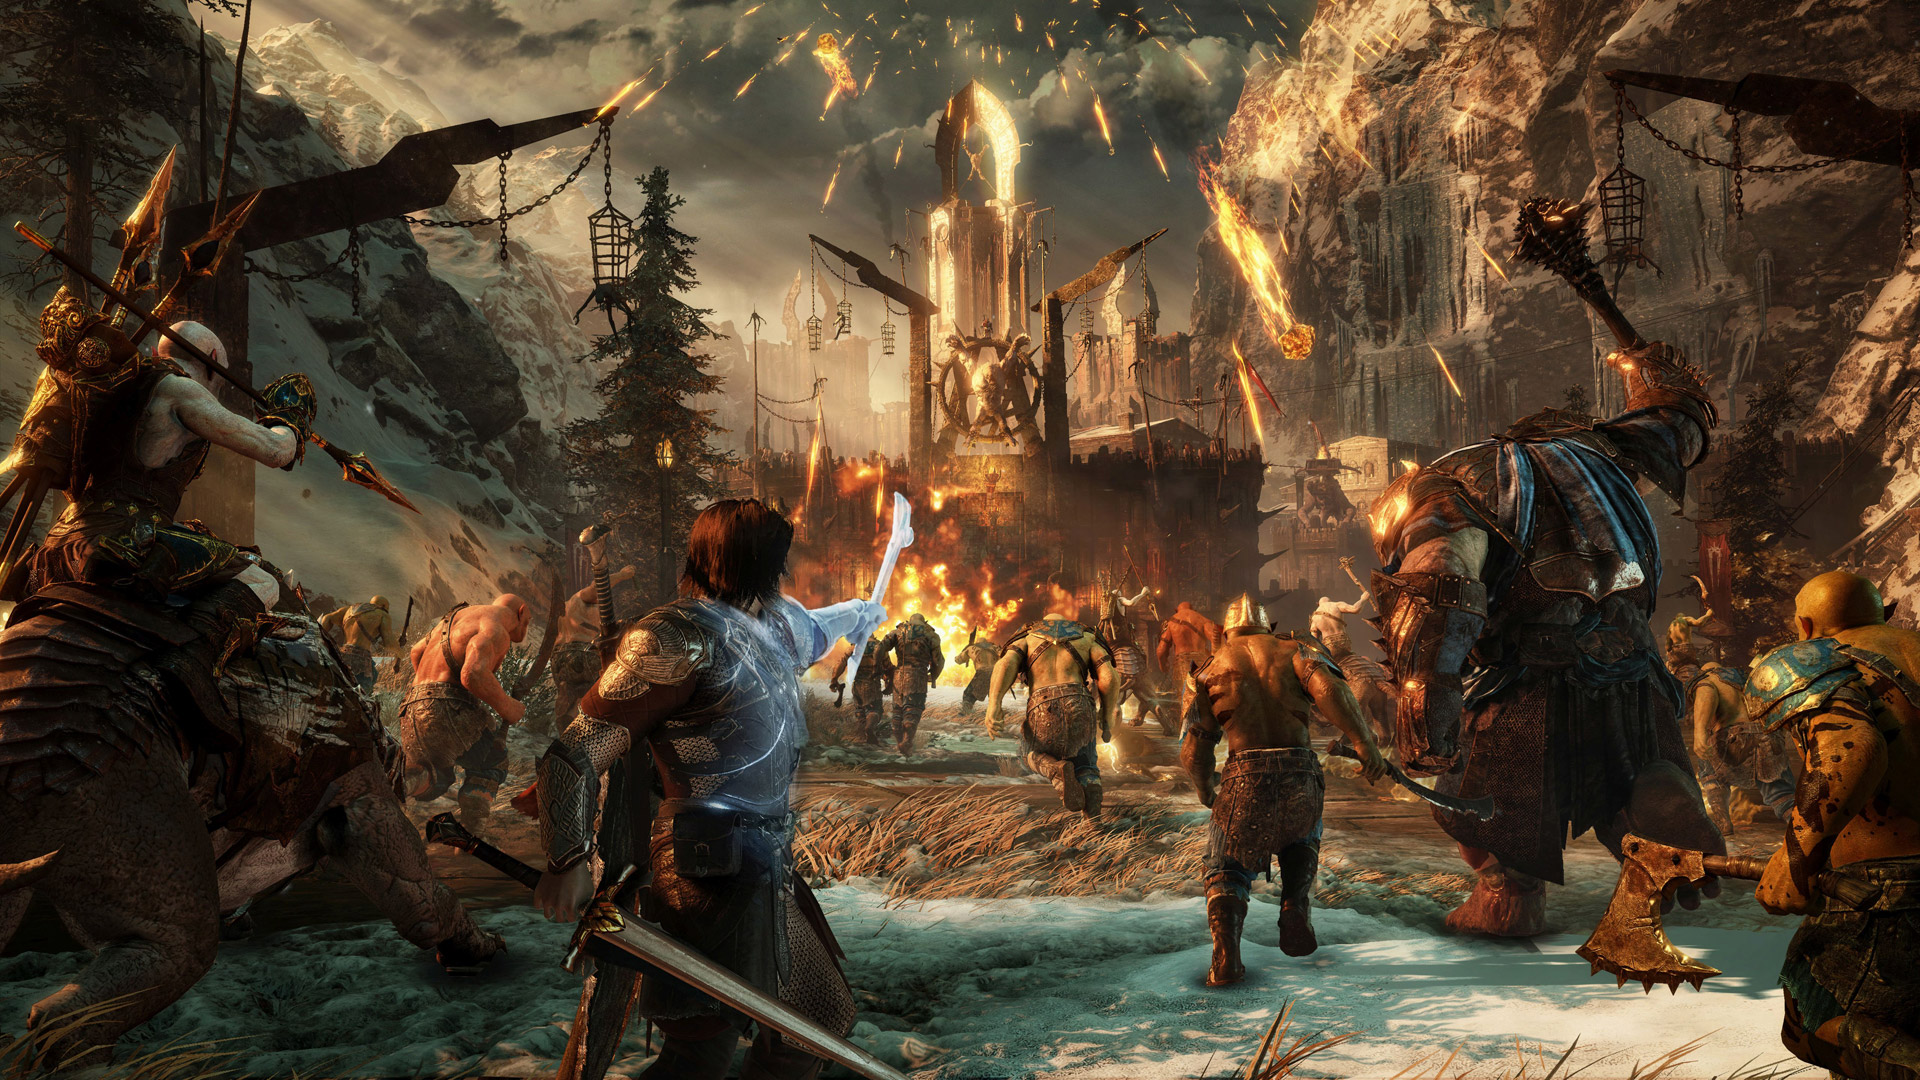 Middle-earth: Shadow of War Wallpaper in 1920x1080